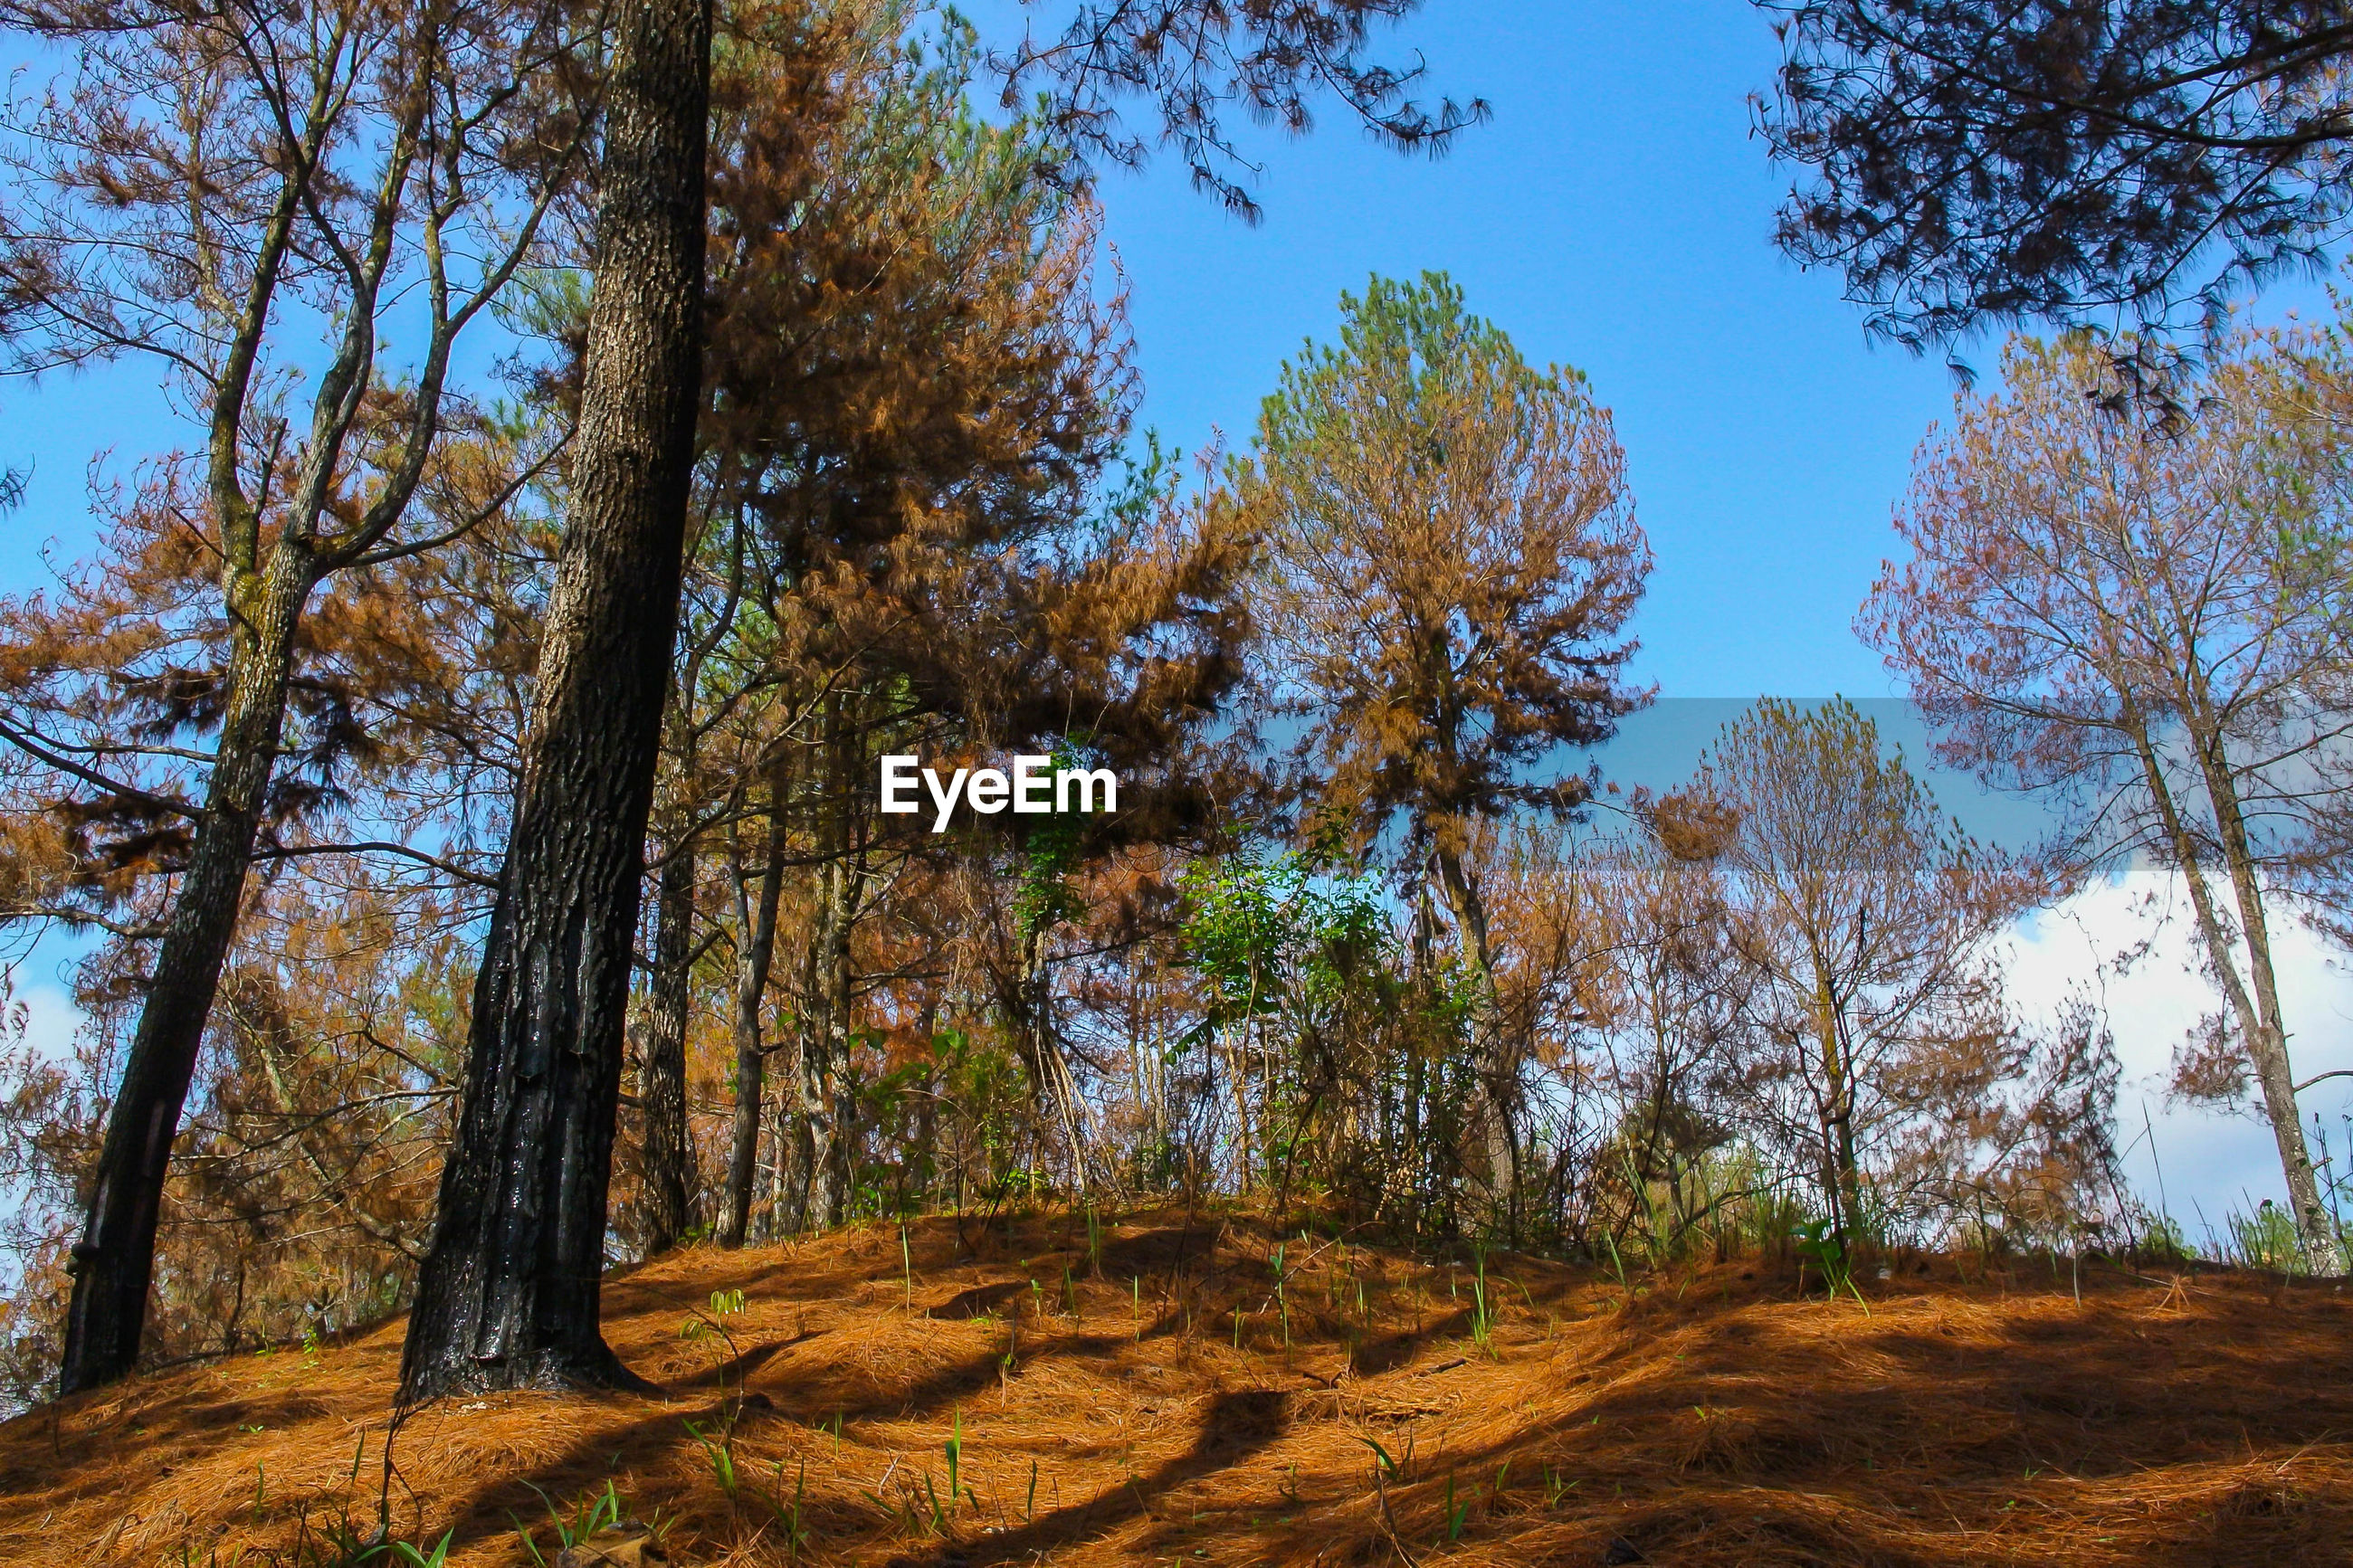 TREES IN FOREST AGAINST CLEAR SKY